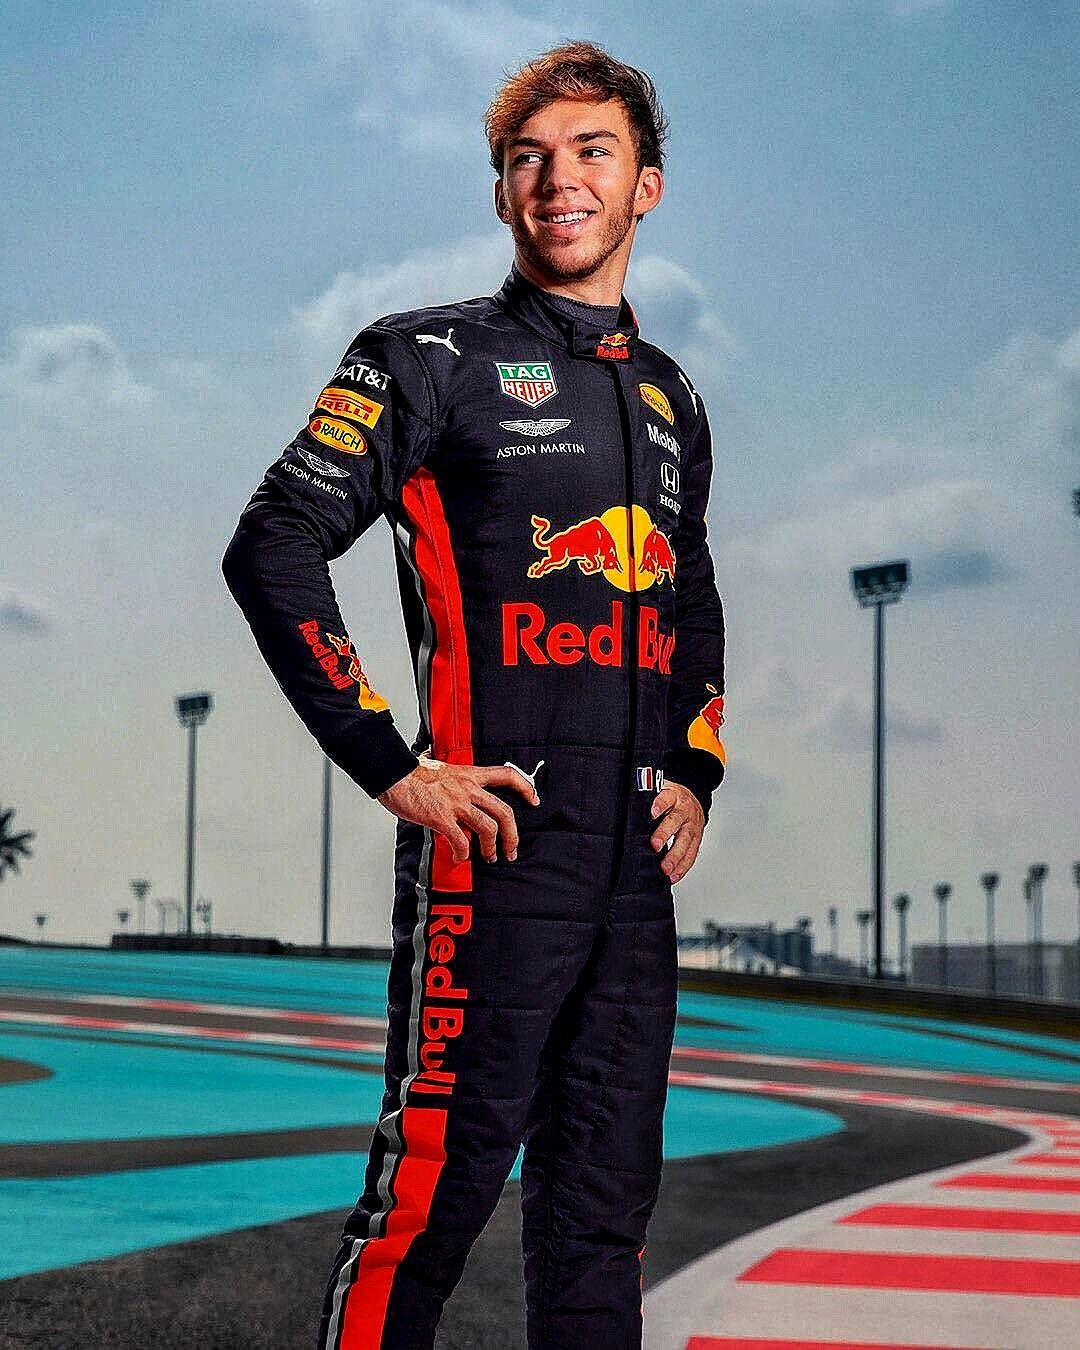 2019 French GP French driver Pierre Gasly, driving for